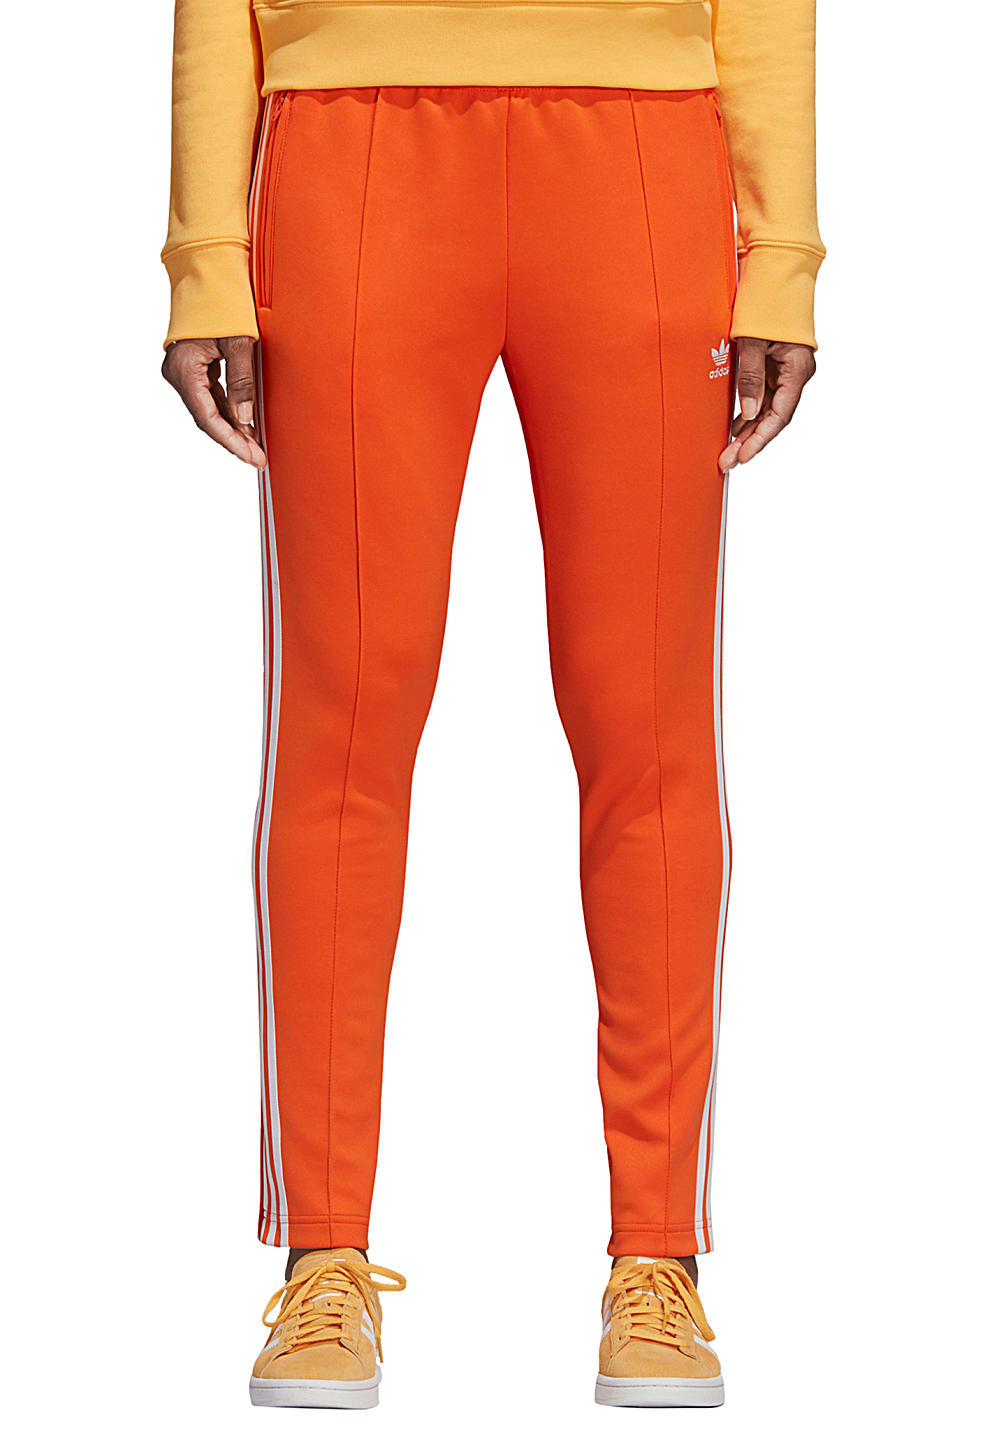 to buy arrives for whole family ADIDAS ORIGINALS Sst - Pantalon de survêtement pour Femme - Orange